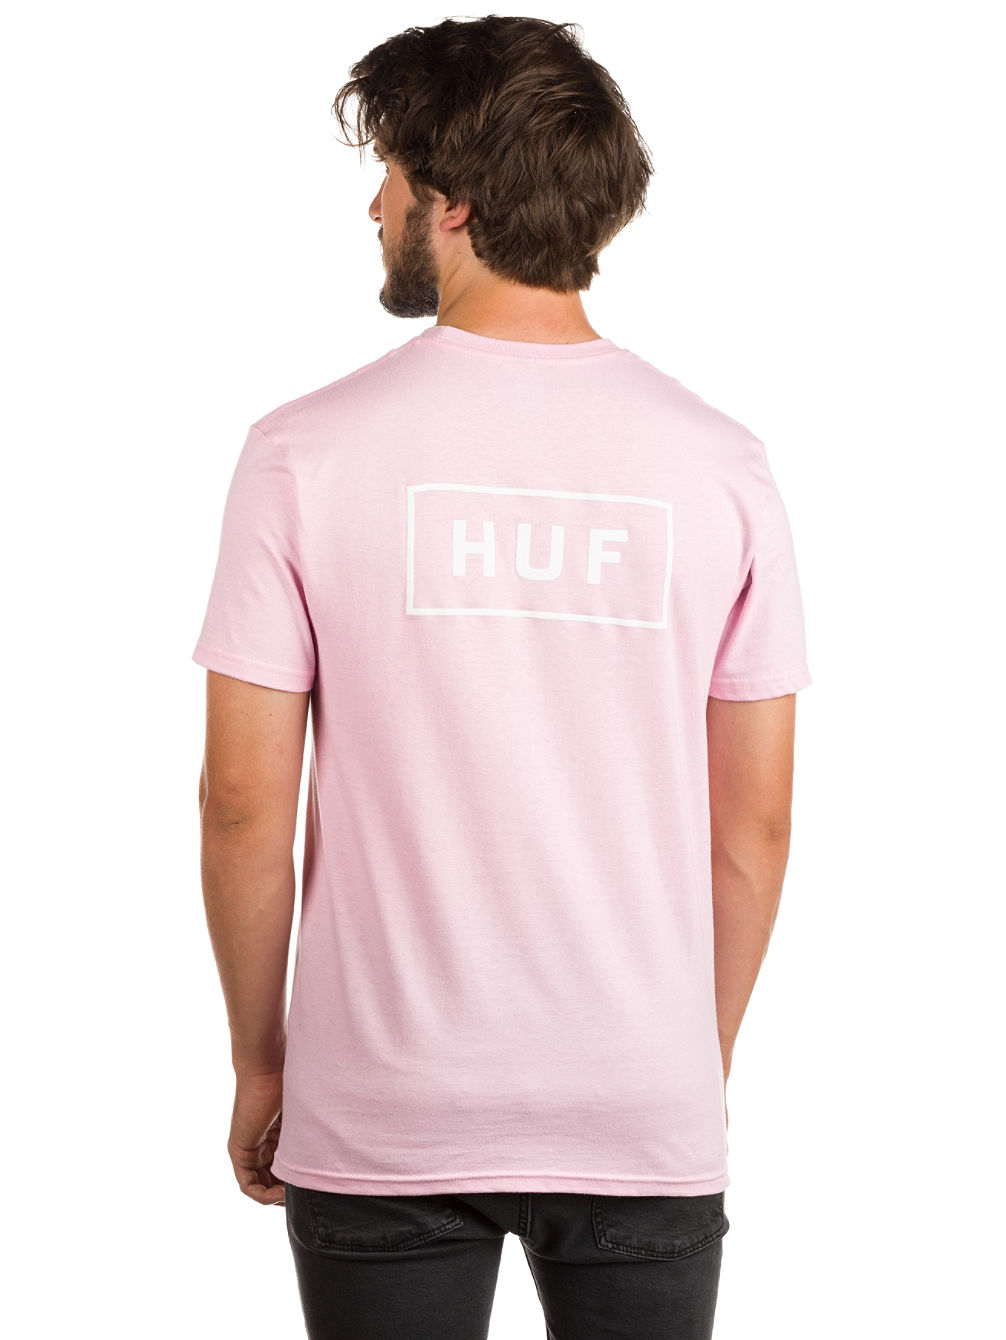 Puff Bar Logo T-Shirt